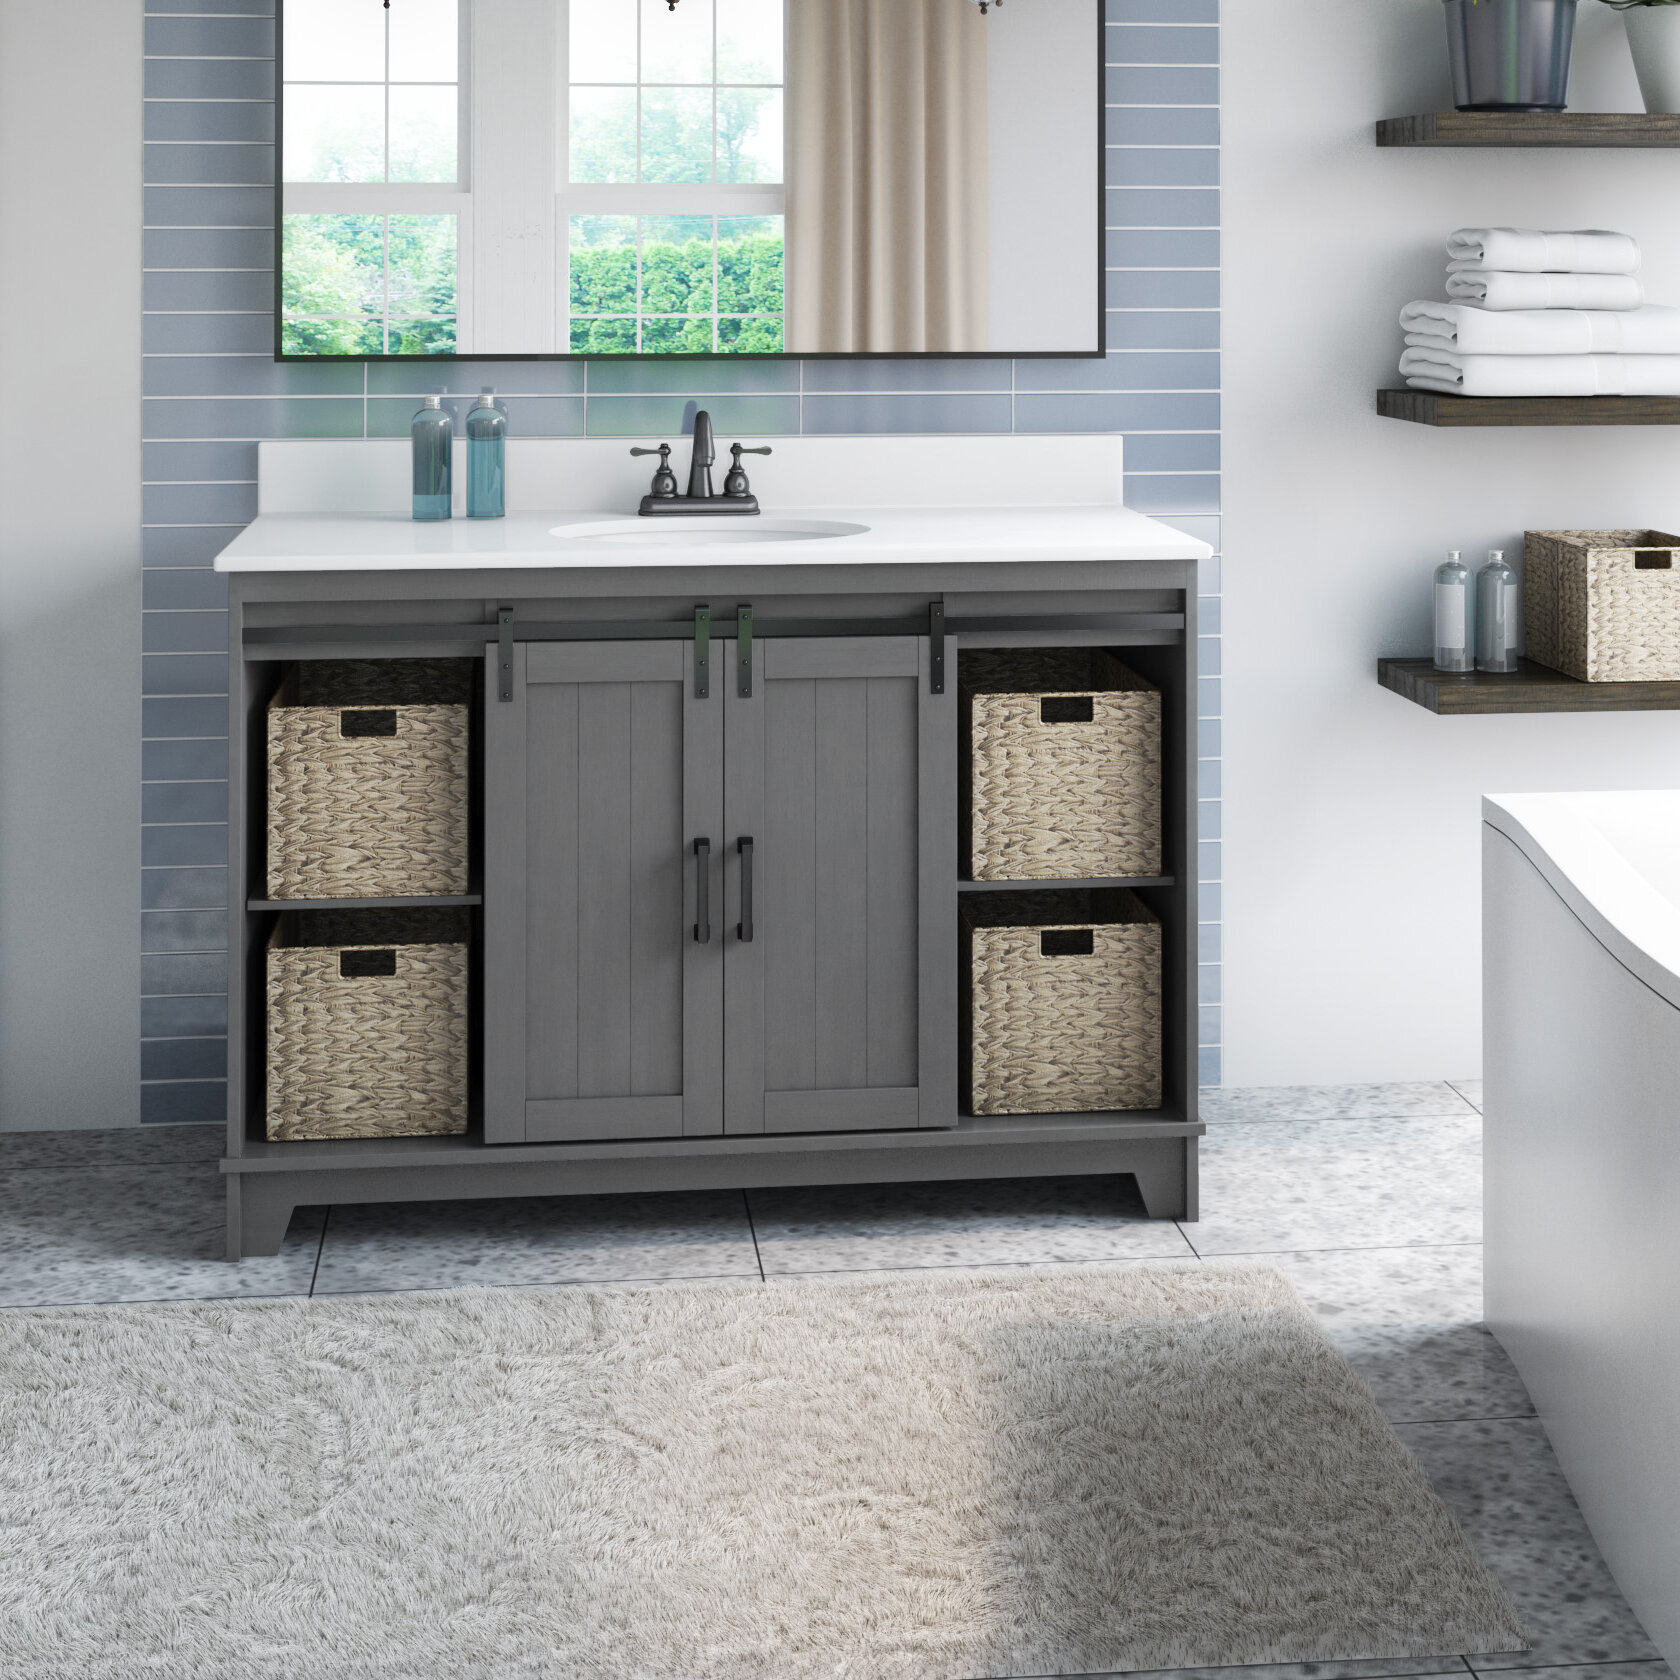 Gracie Oaks Trogdon Sliding Barn Door 49 Single Bathroom Vanity Set Reviews Wayfair